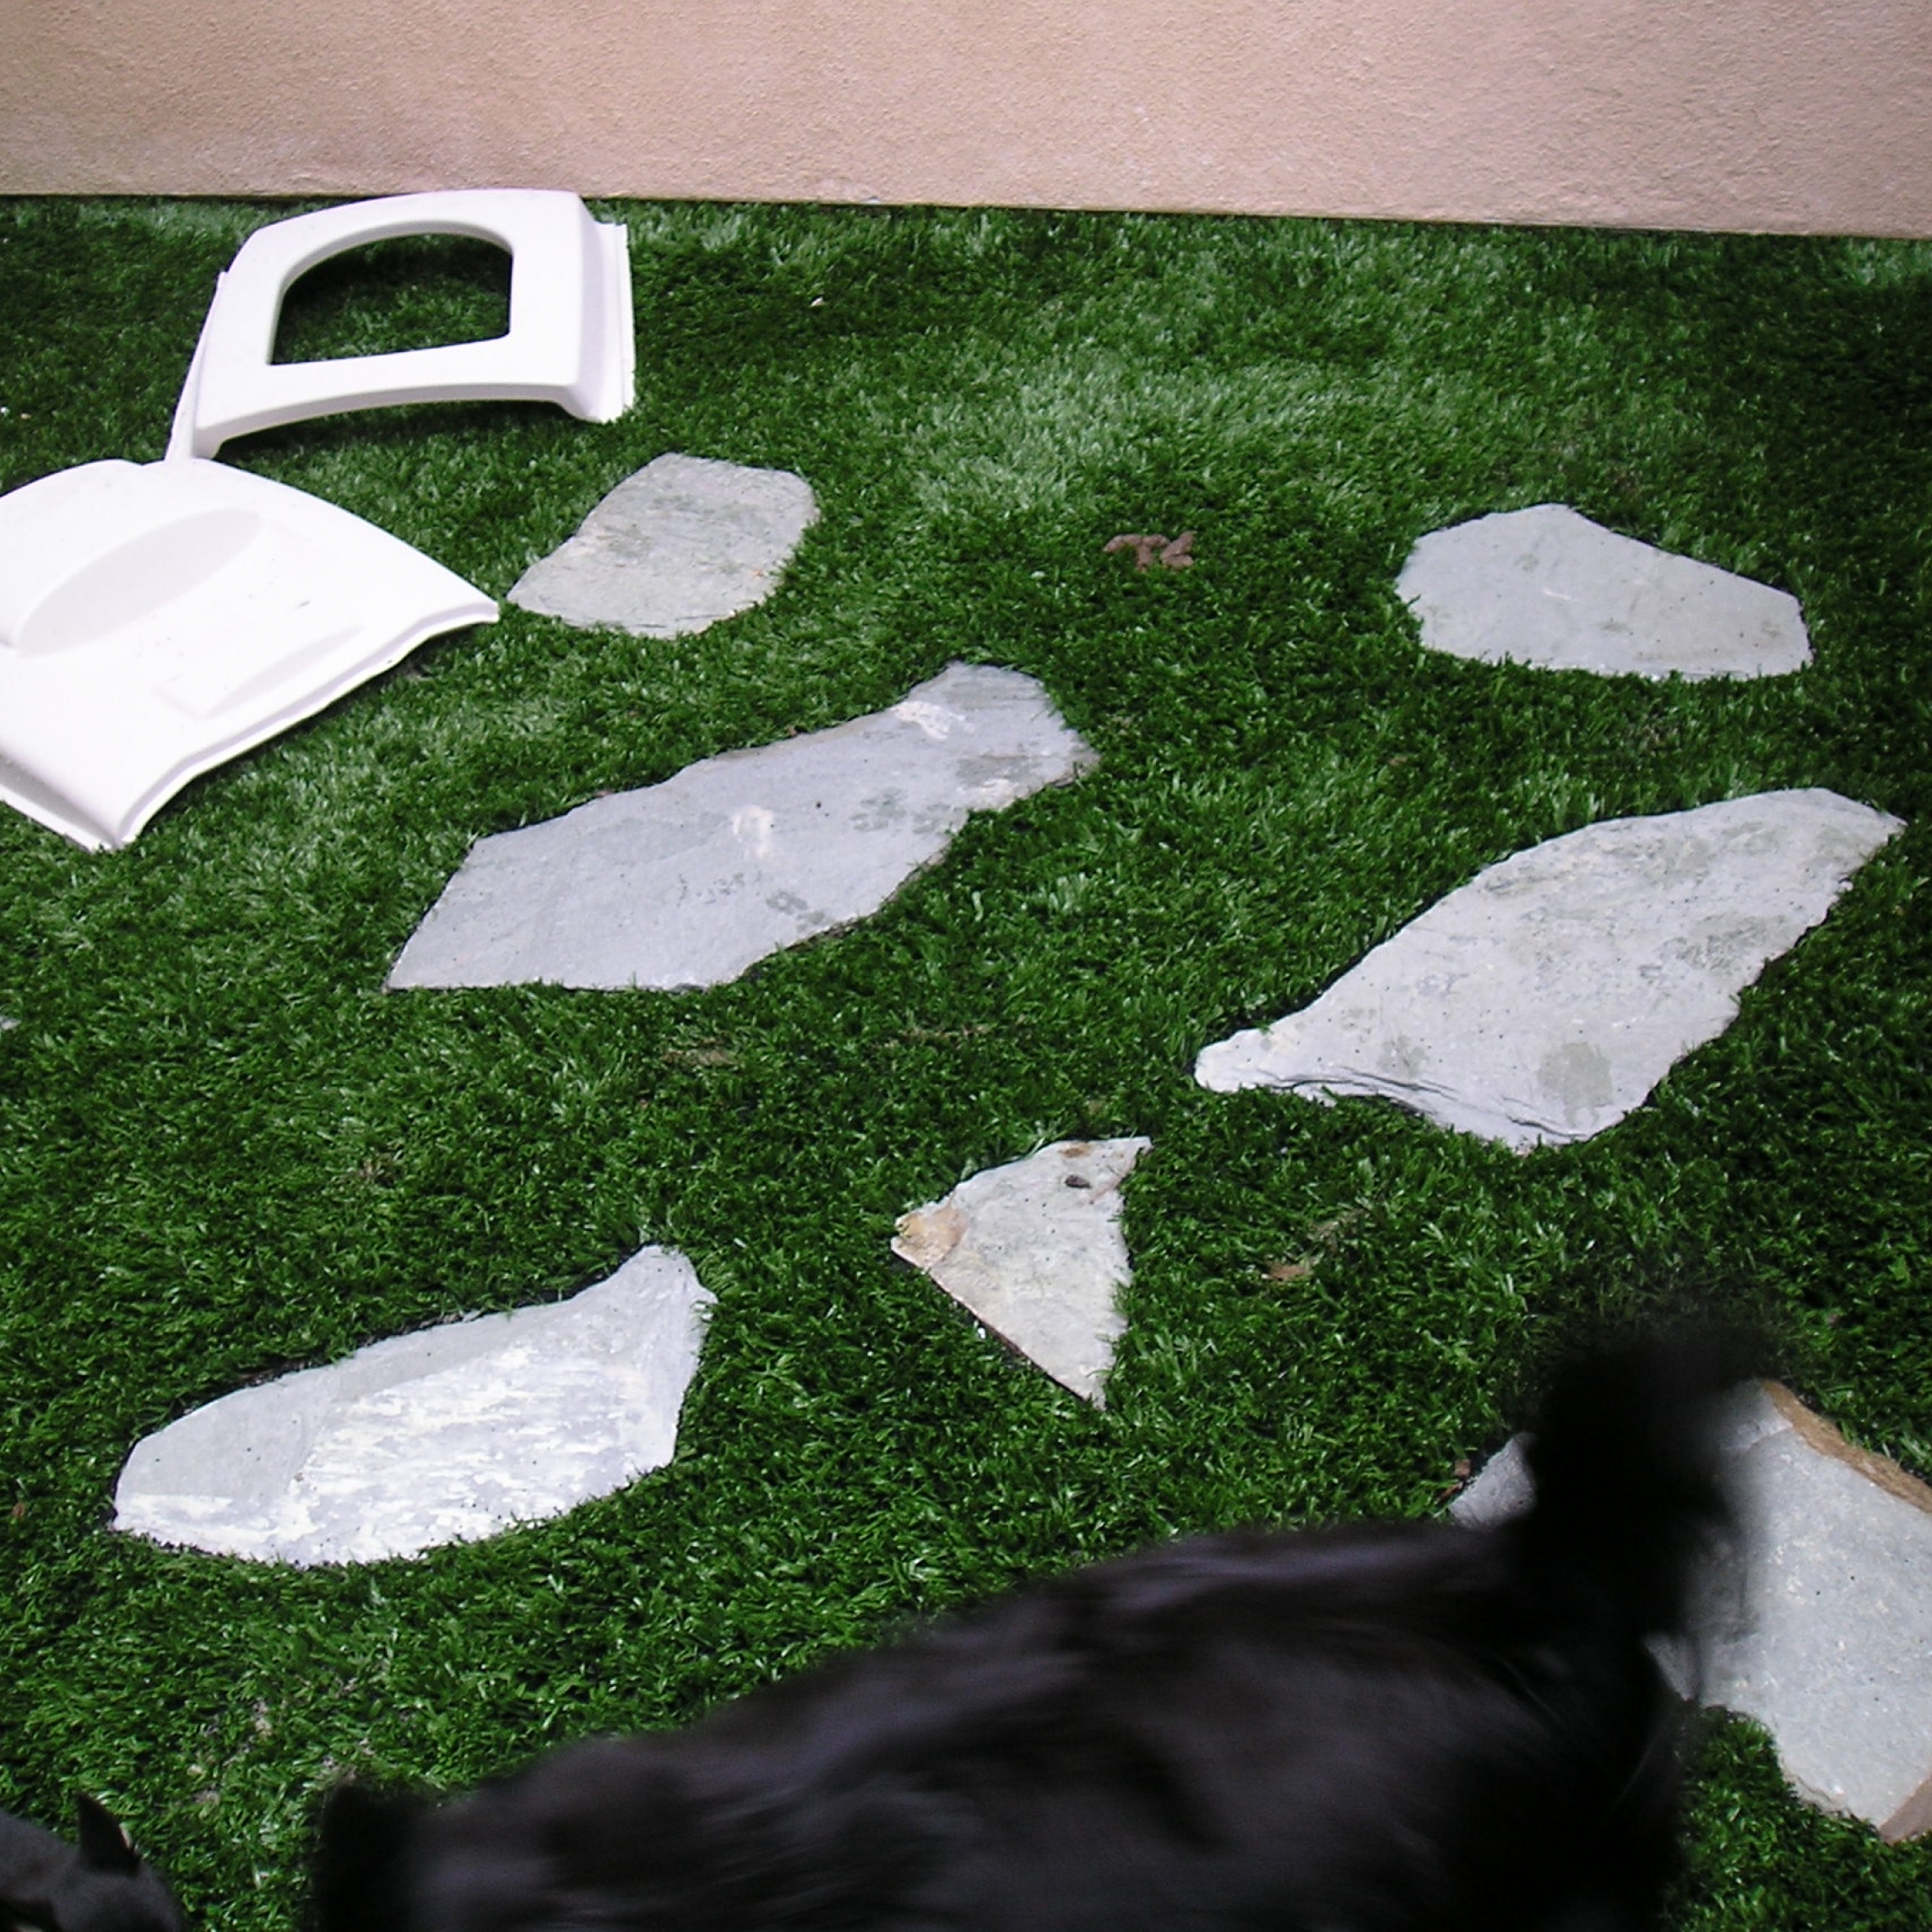 S Blade-90 turf prices,artificial turf,synthetic turf,artificial turf installation,how to install artificial turf,used artificial turf,fake grass for yard,backyard turf,turf backyard,turf yard,fake grass for backyard